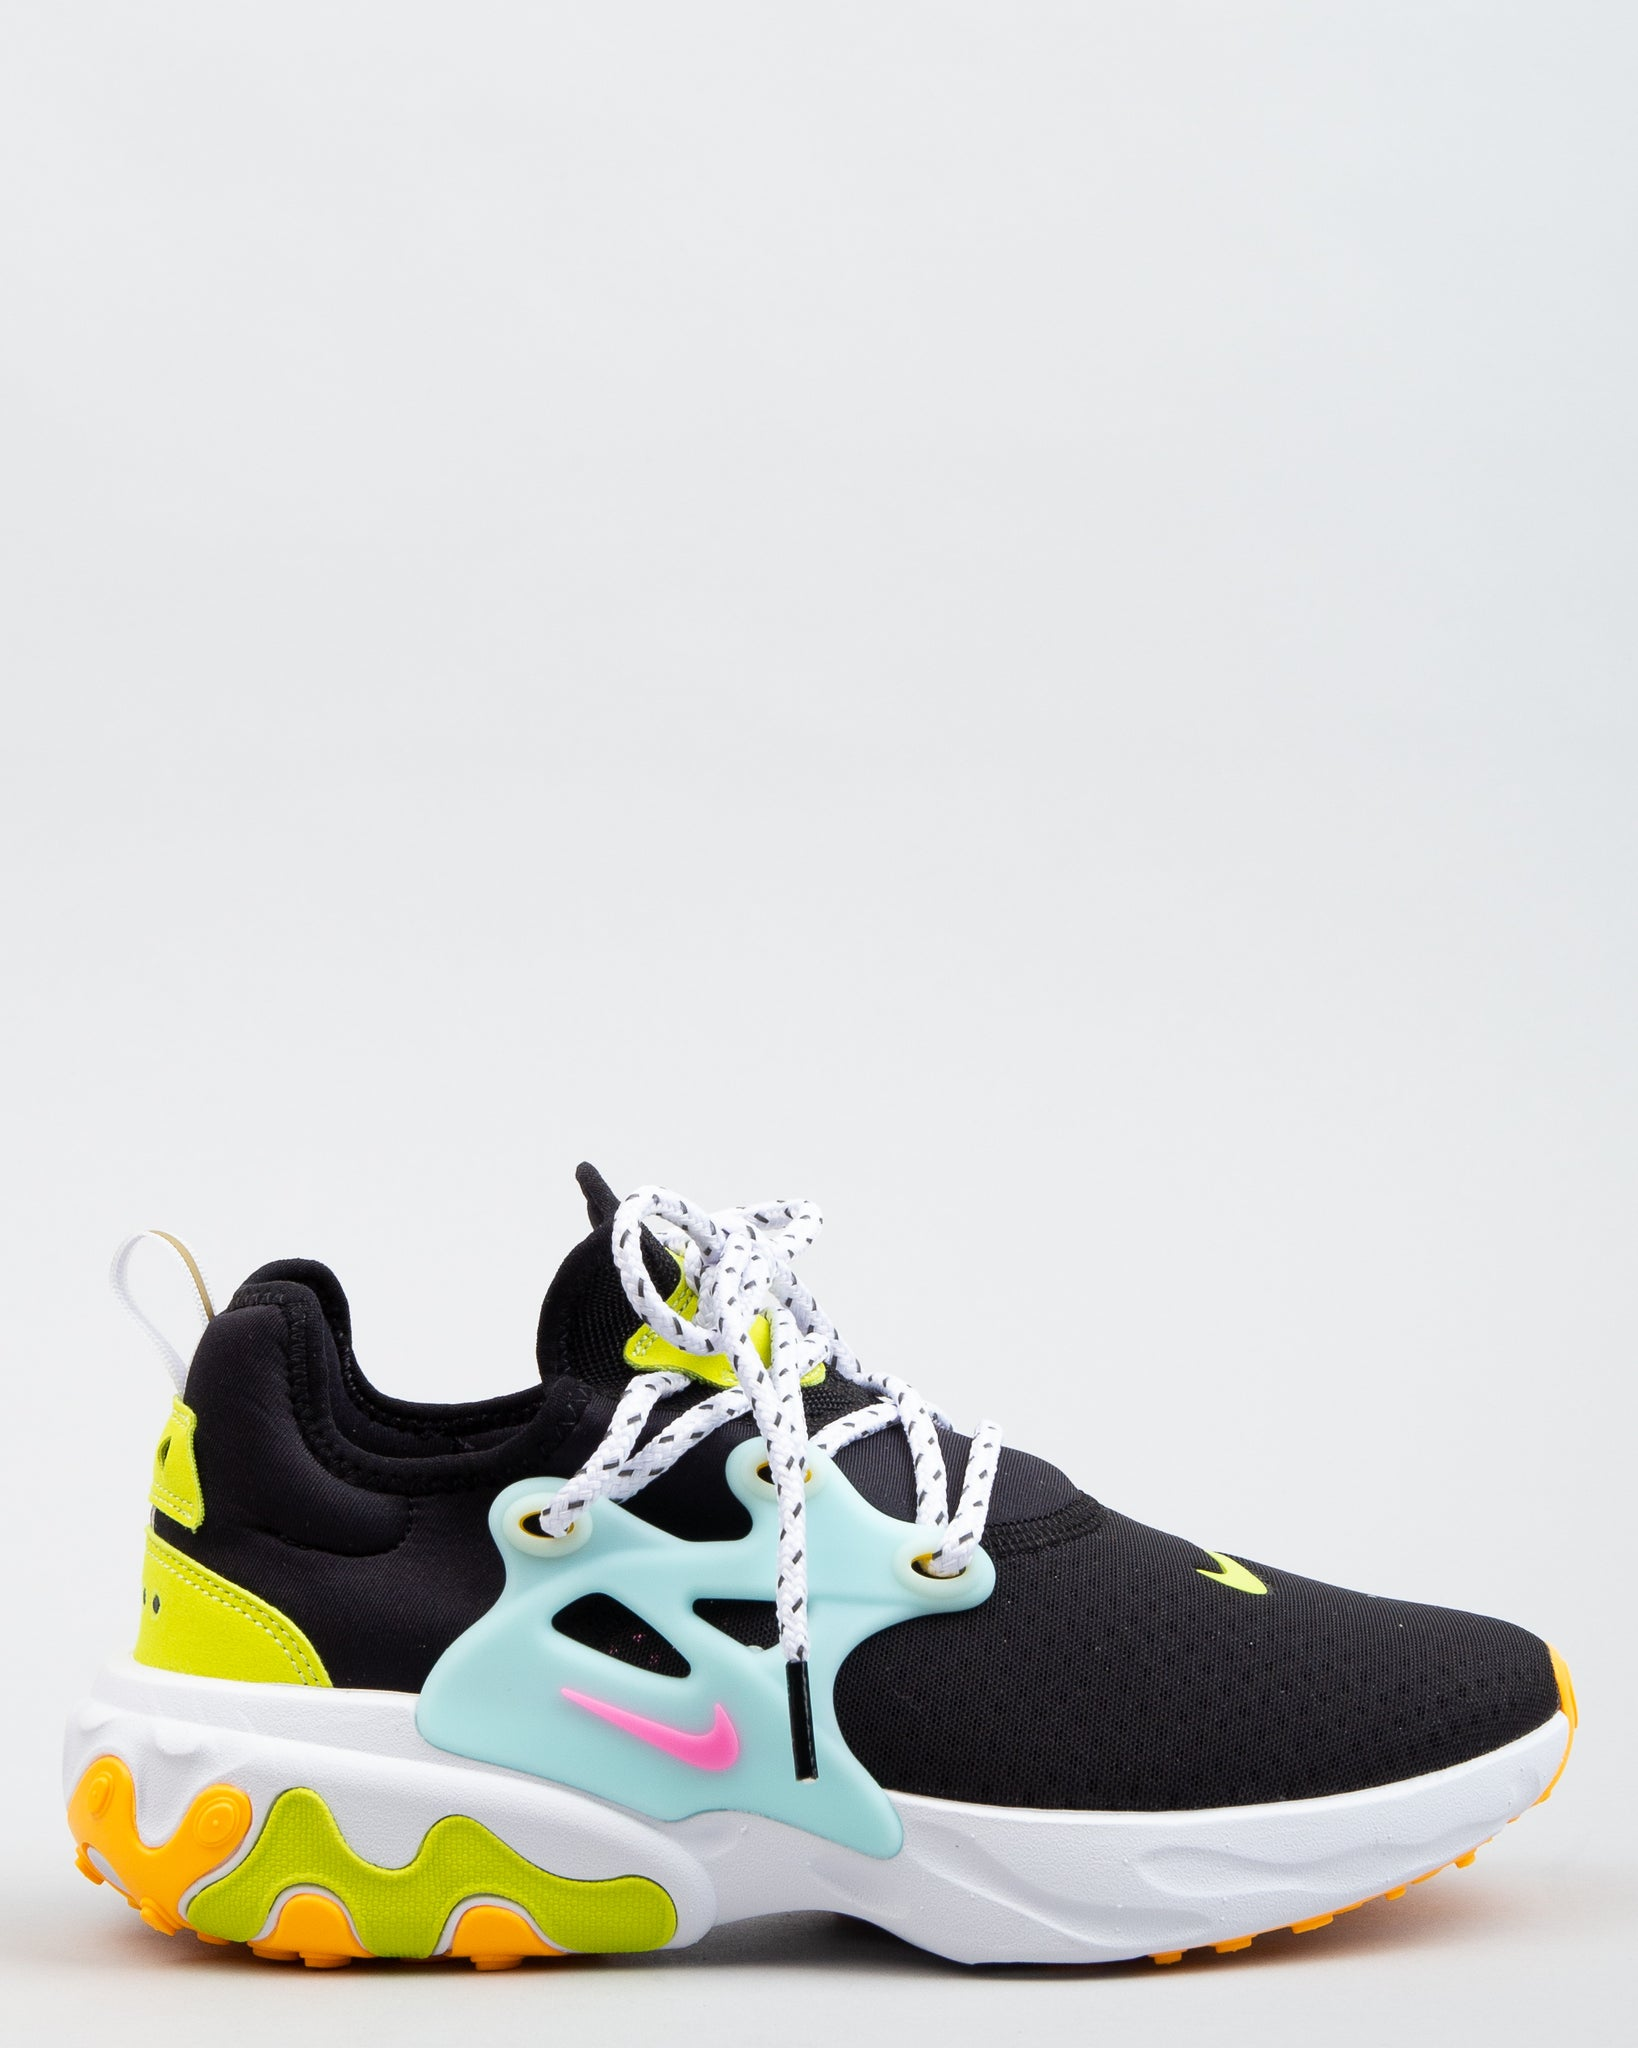 WMNS React Presto Black/Psychic Pink/Teal Tint